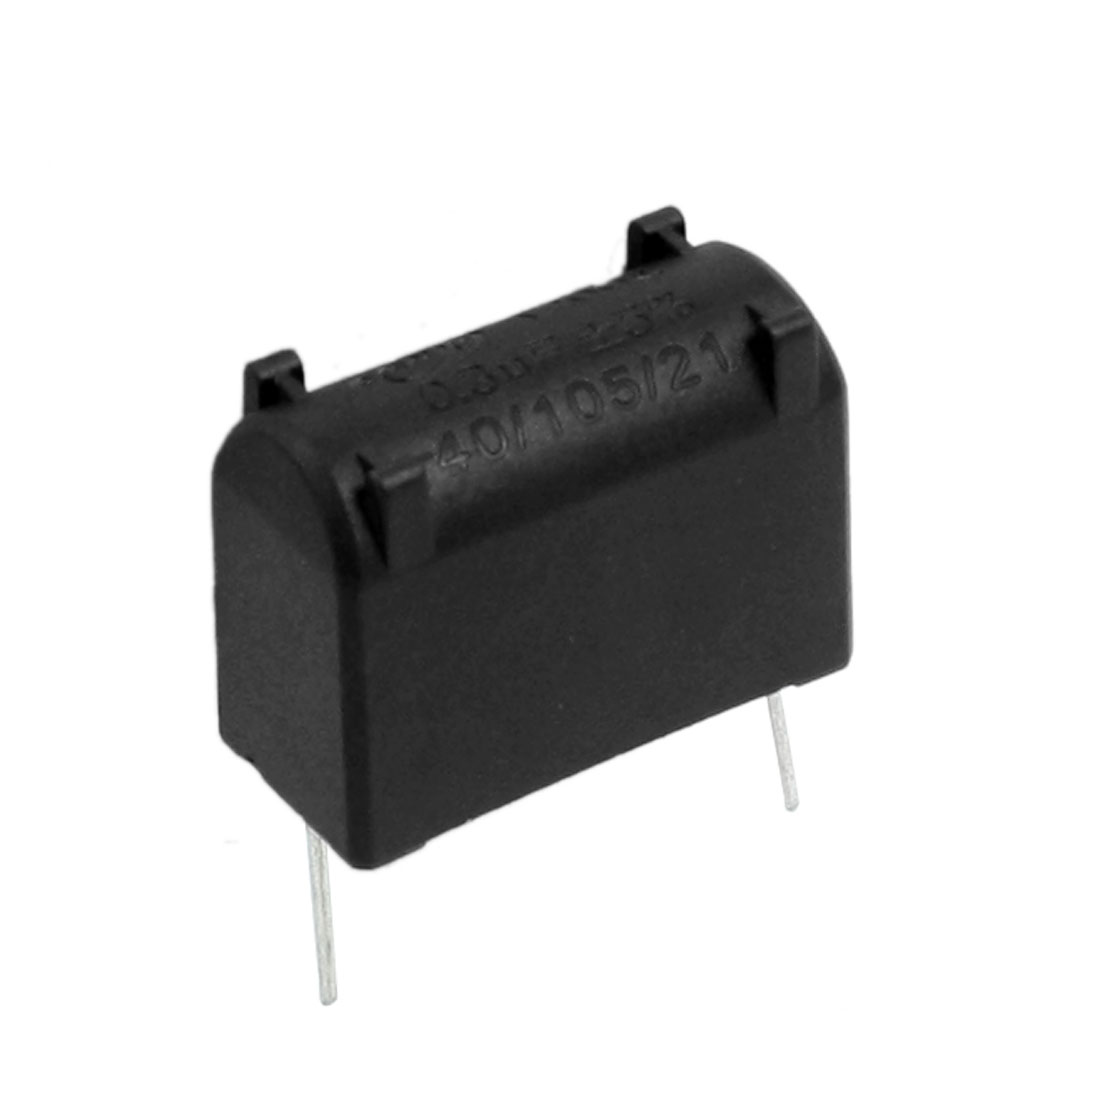 1200V DC 0.3uF Polypropylene Film Capacitor for Induction Cooker